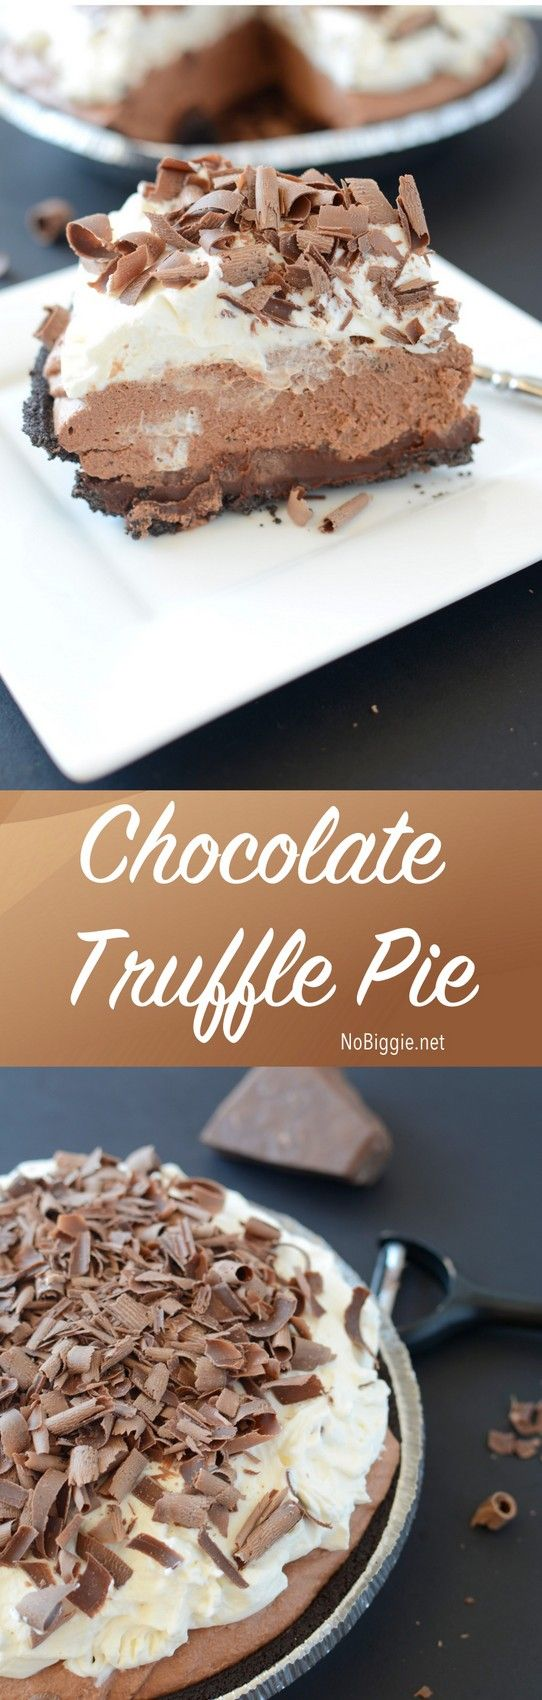 Chocolate Truffle Pie - this pie is amazing! Just look at all those chocolate layers | get the recipe on NoBiggie.net